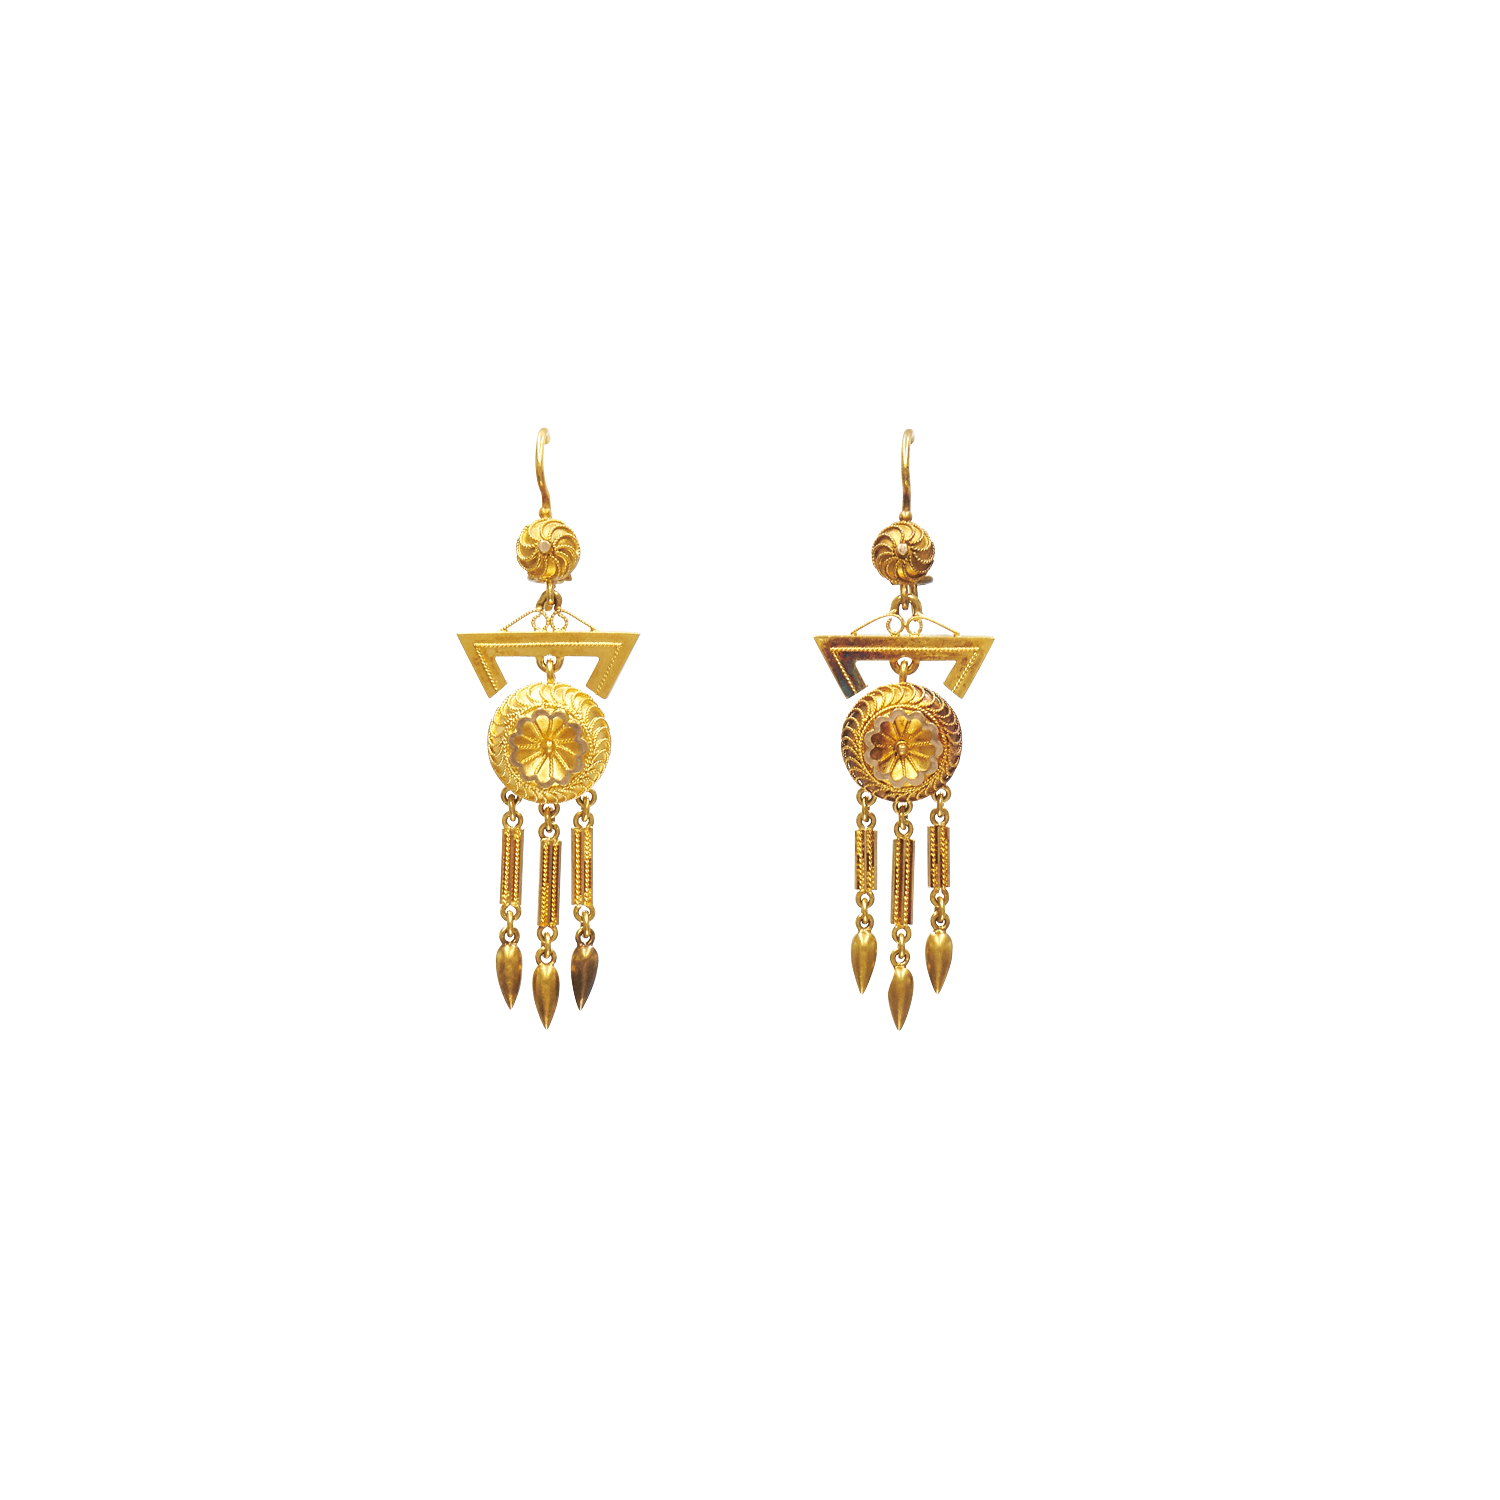 Antique 18K Yellow Gold Etruscan Revival Pendant Earrings Style E-41434-FL-0-0